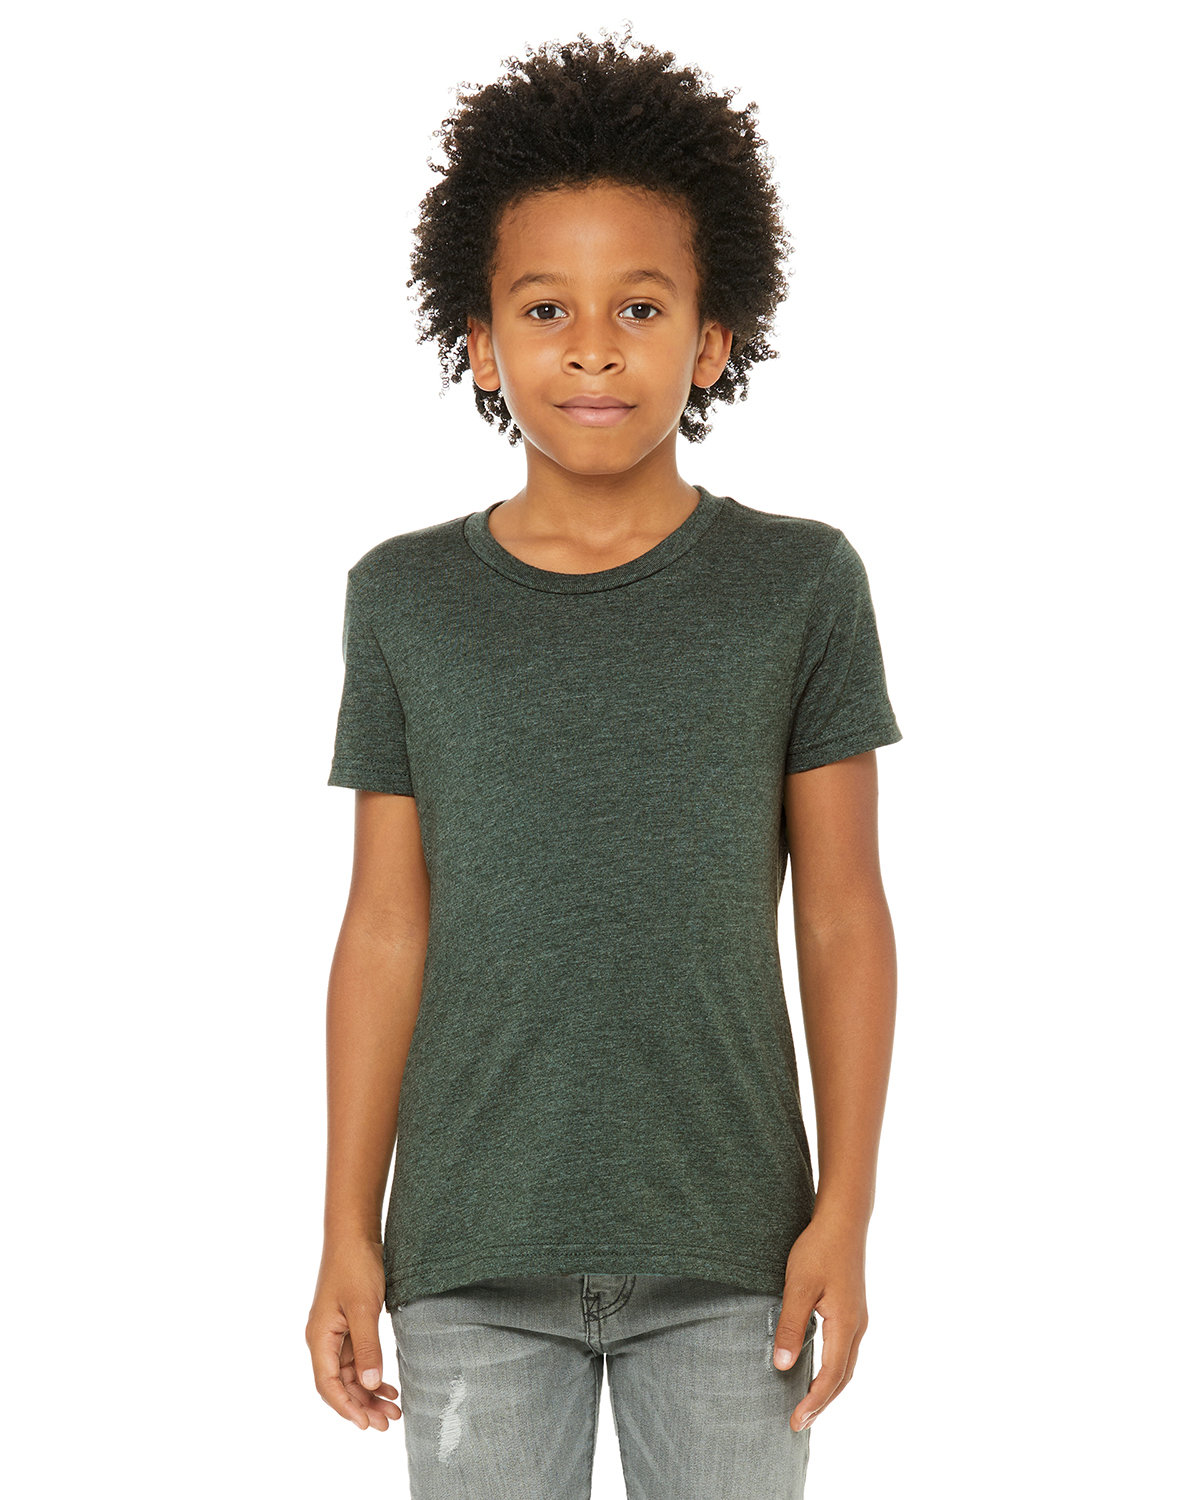 Bella + Canvas Youth Jersey T-Shirt HEATHER FOREST